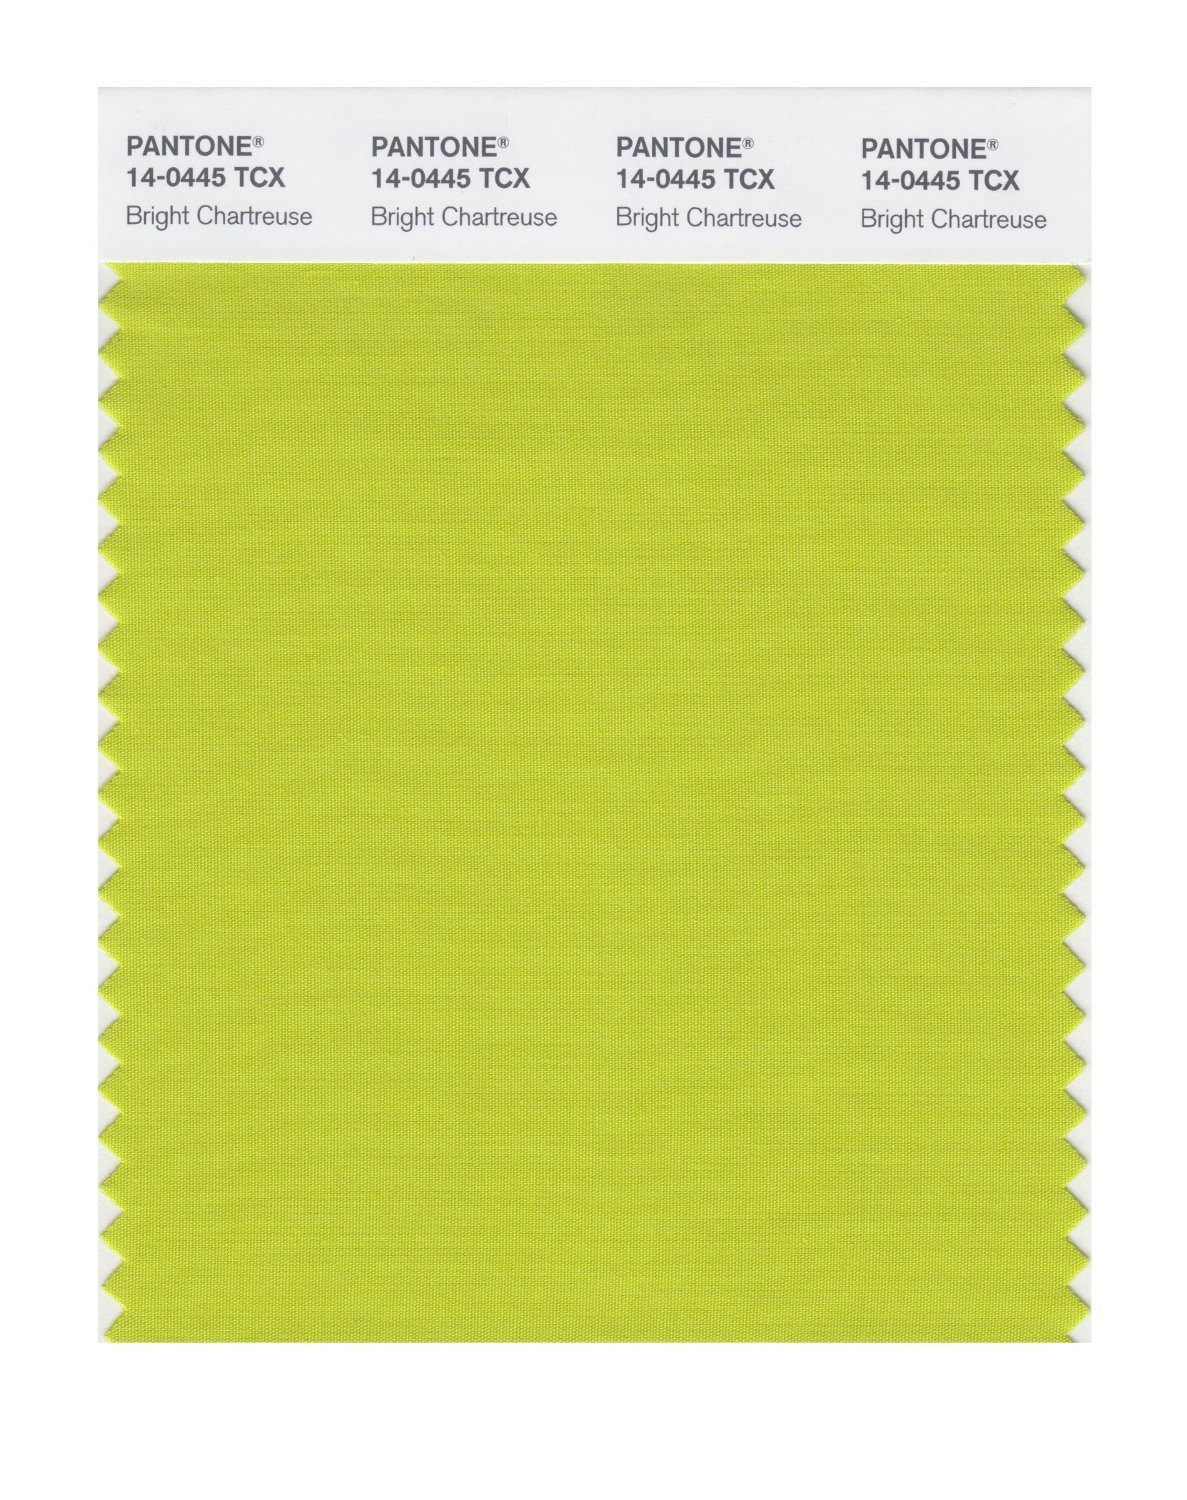 Pantone Smart Swatch 14-0445 Bright Chartreus